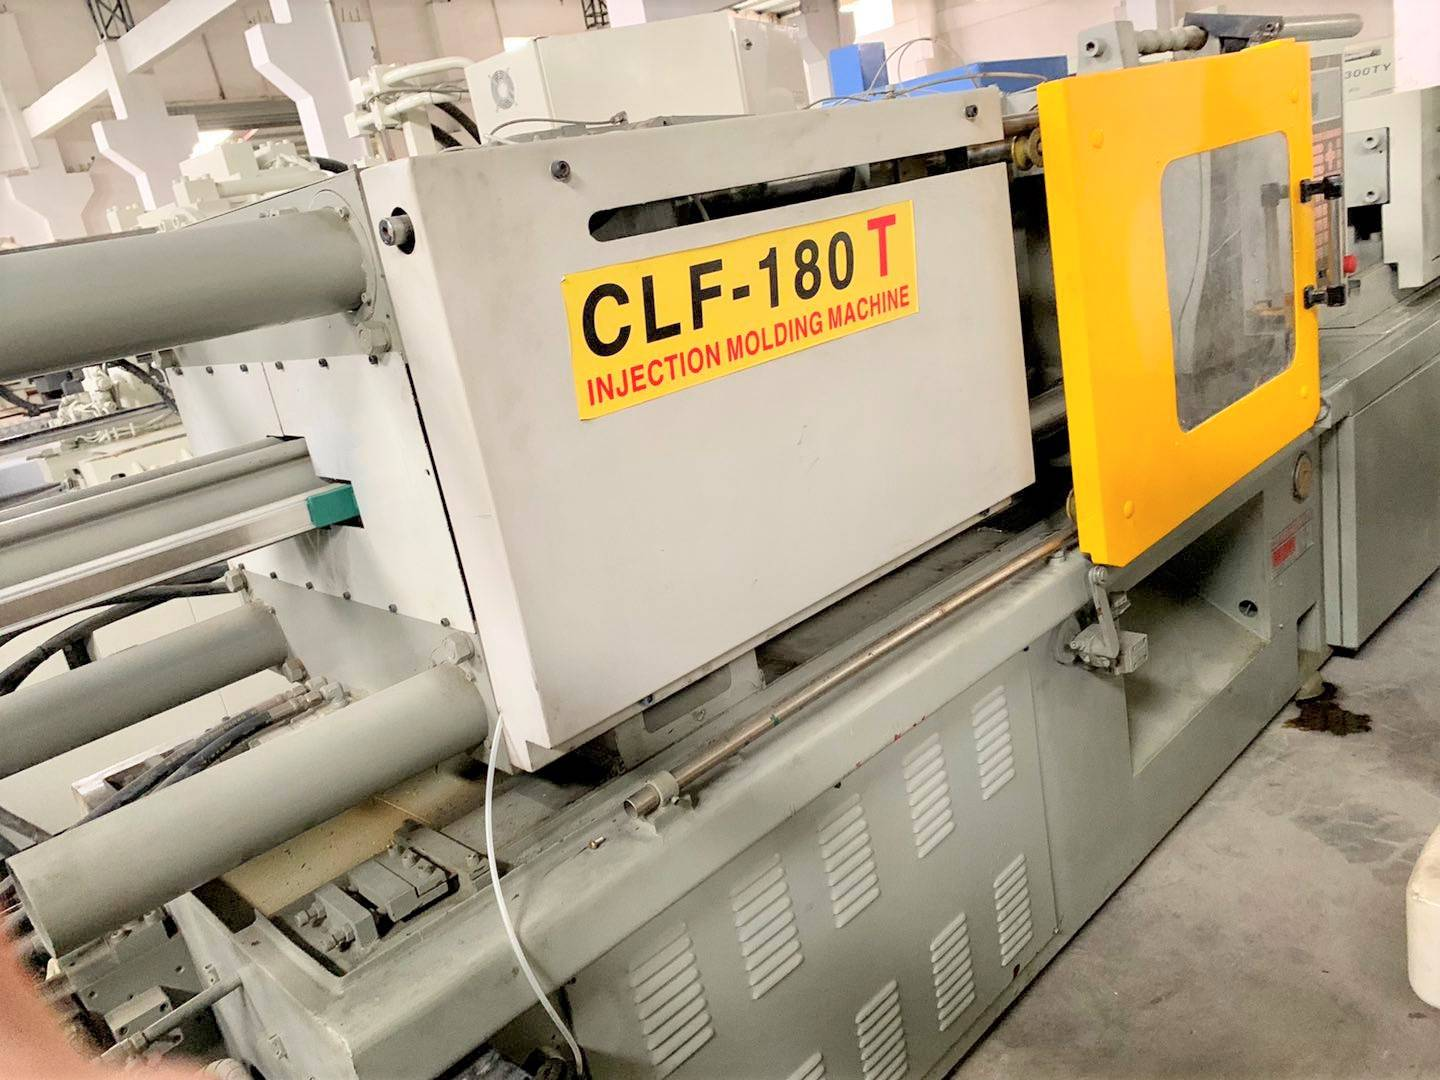 CLF-180T used Injection Molding Machine Featured Image